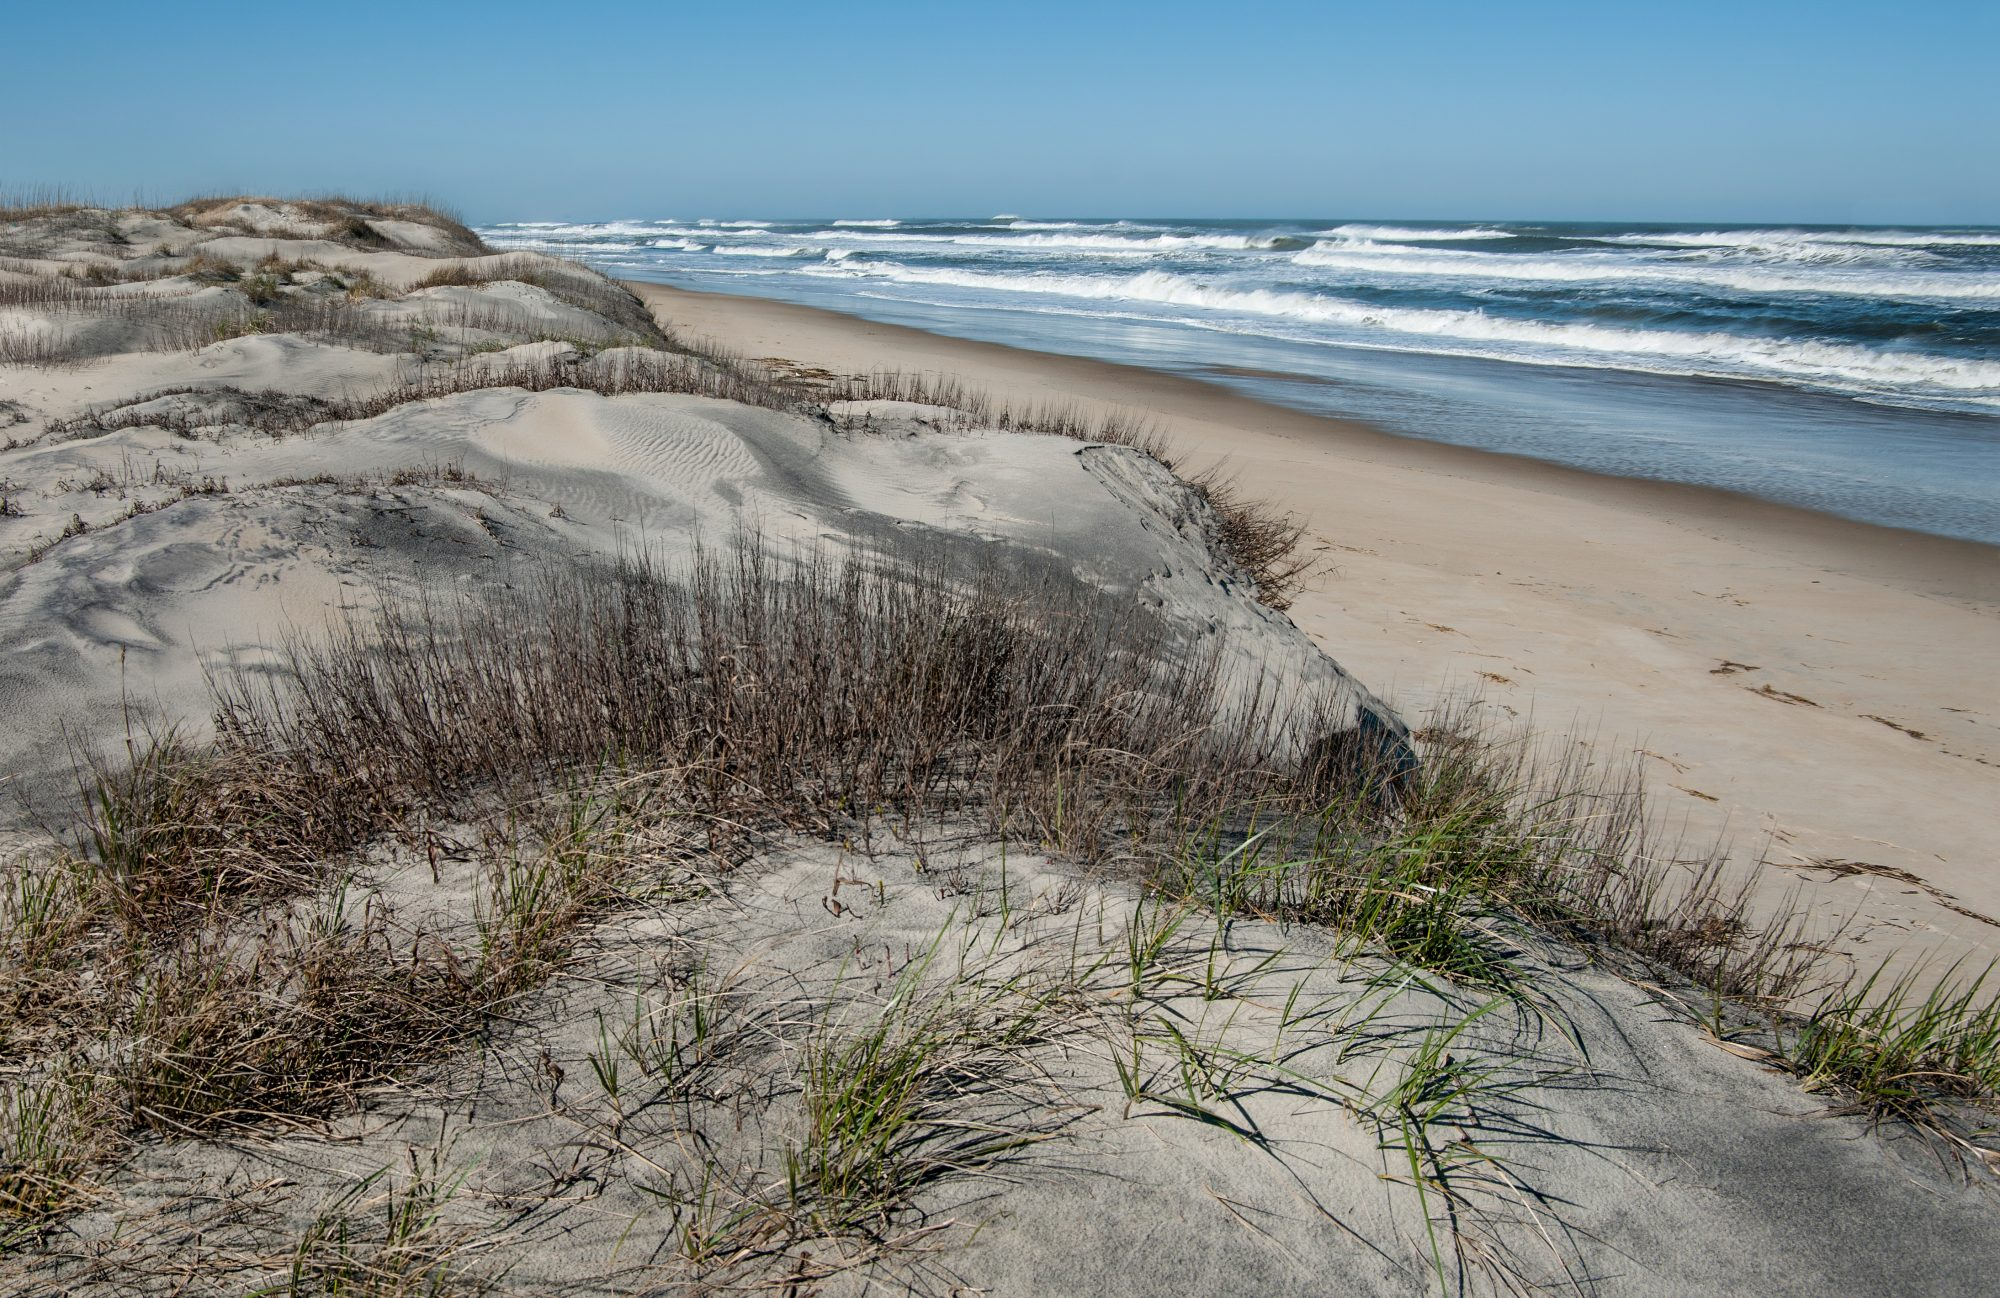 WATCH: Hurricane Dorian Exposed a Remarkable Sight on This Outer Banks Beach